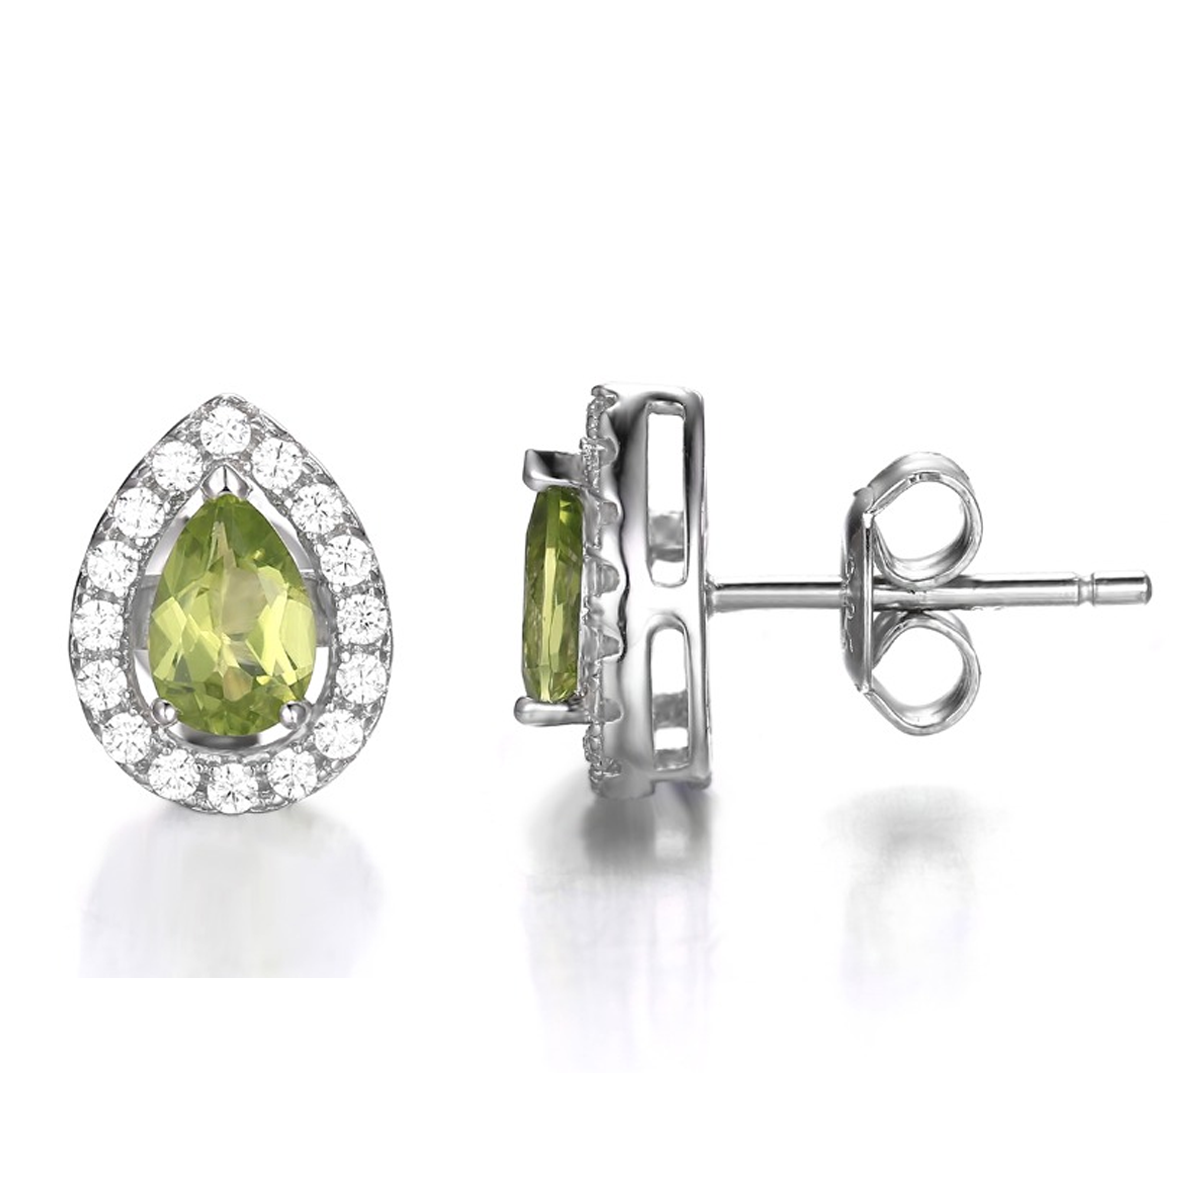 in silver sterling gifts earrings gold women white stud accessories jewelry green plated products handmade peridot